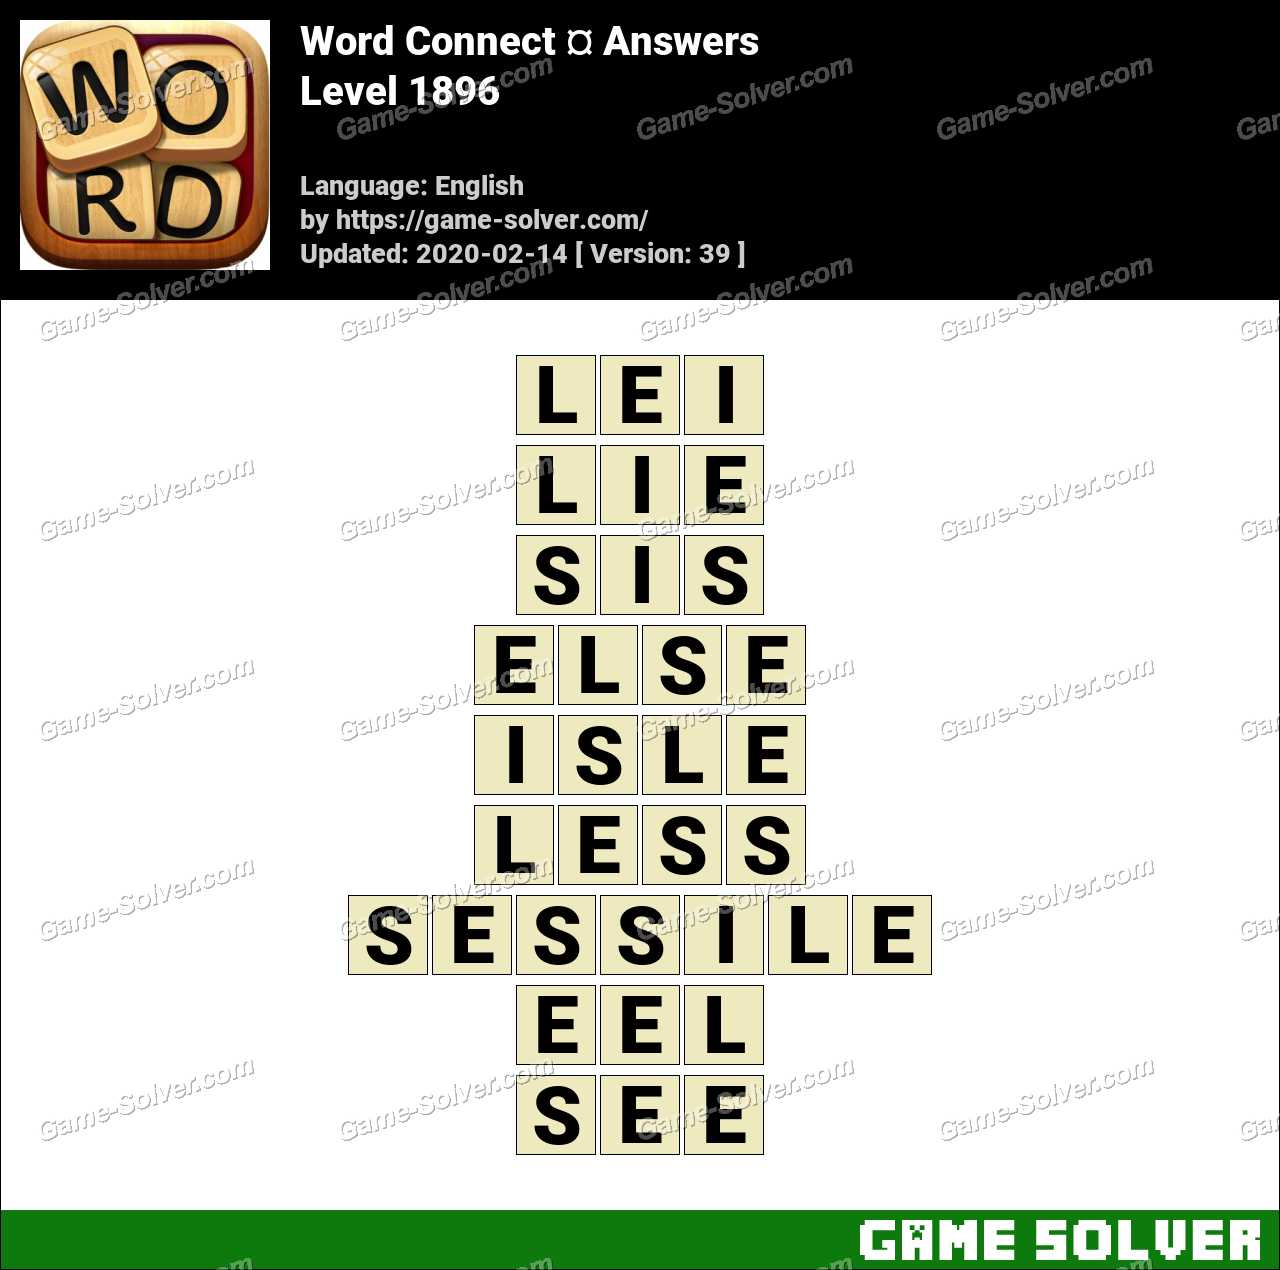 Word Connect Level 1896 Answers